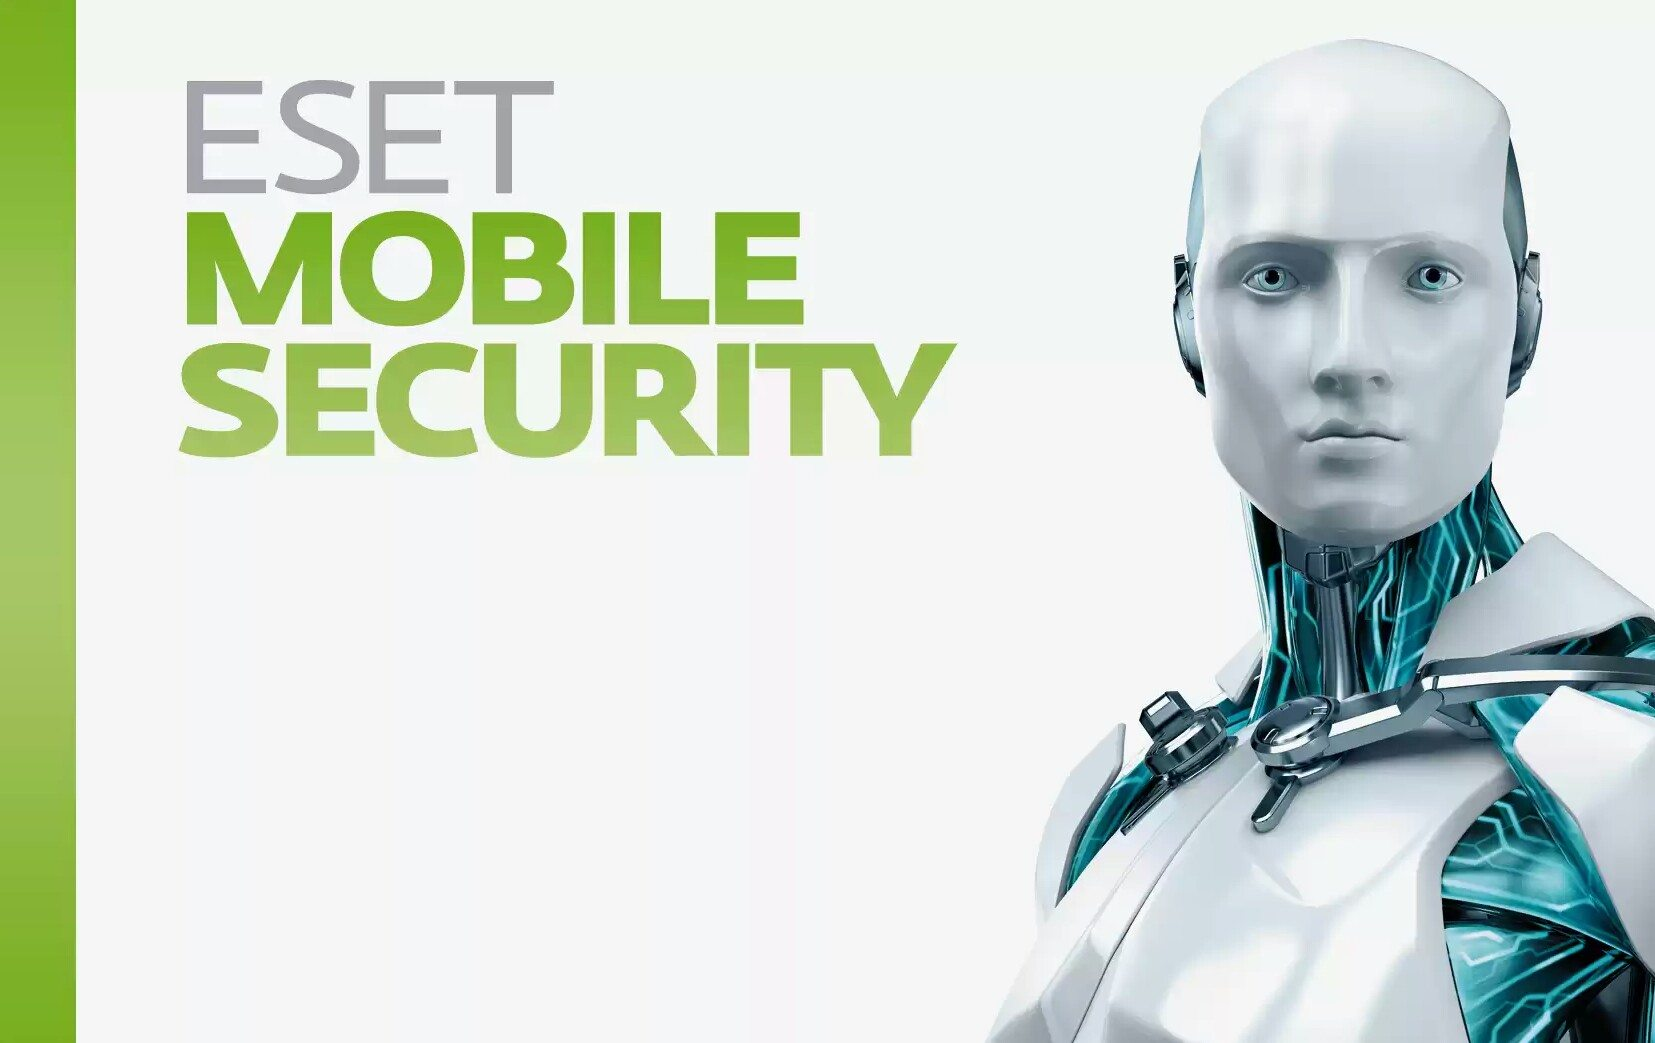 ESET NOD32 MOBILE SECURITY 1 YEAR 1 DEVICE